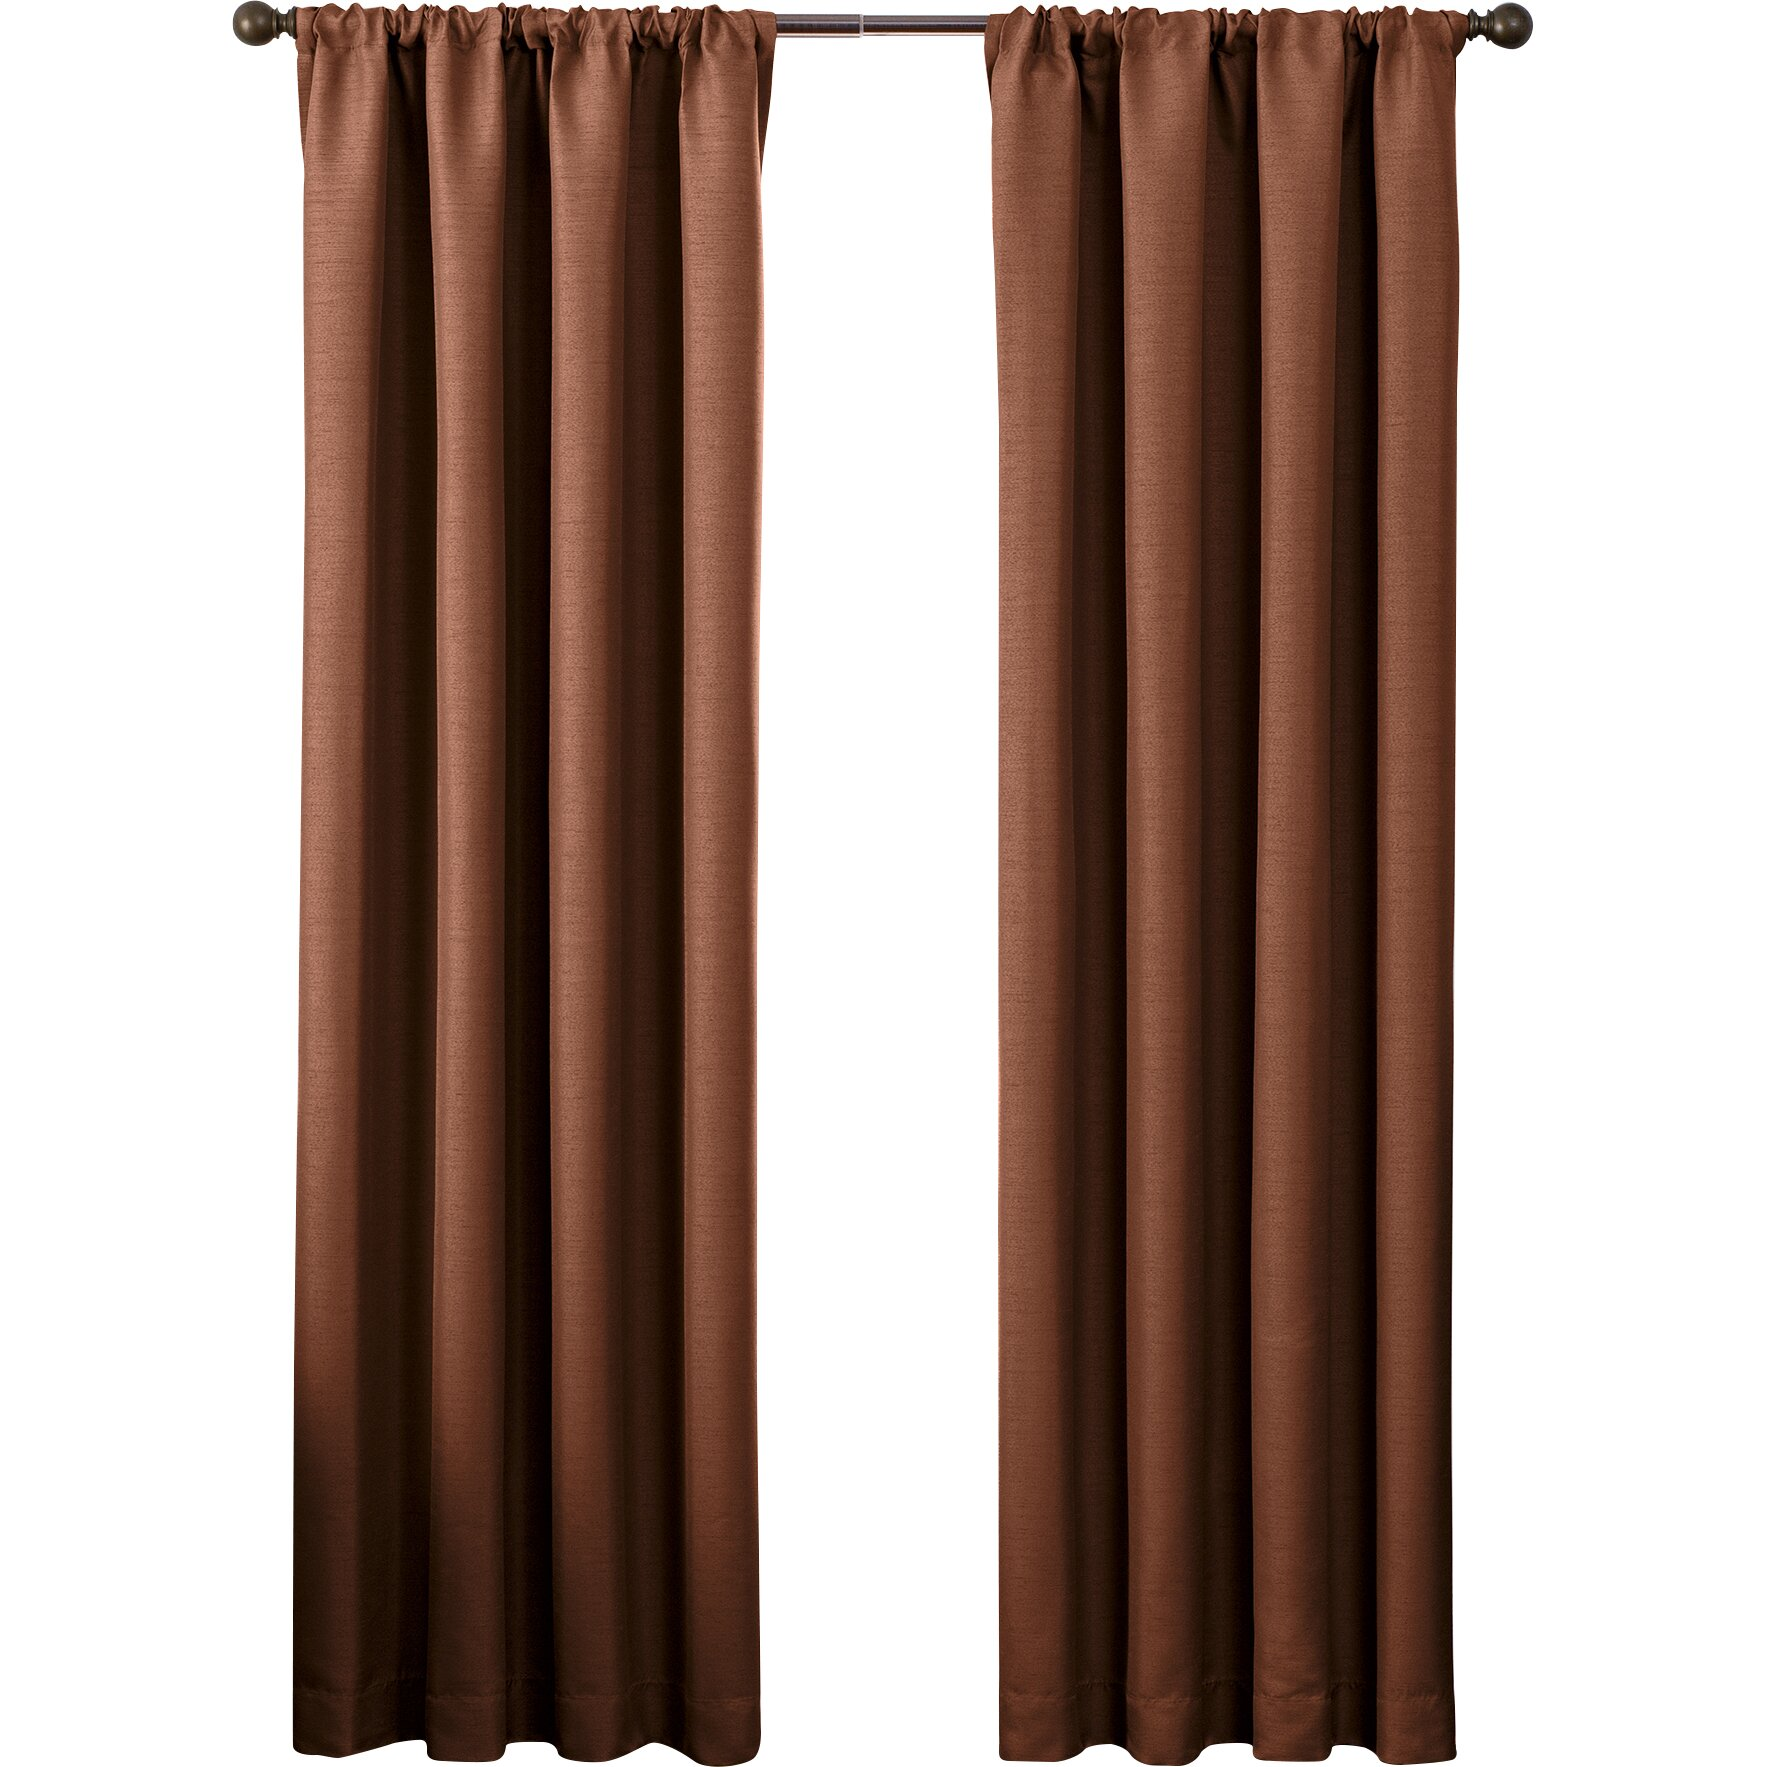 Style Domain Solid Blackout Rod Pocket Single Curtain